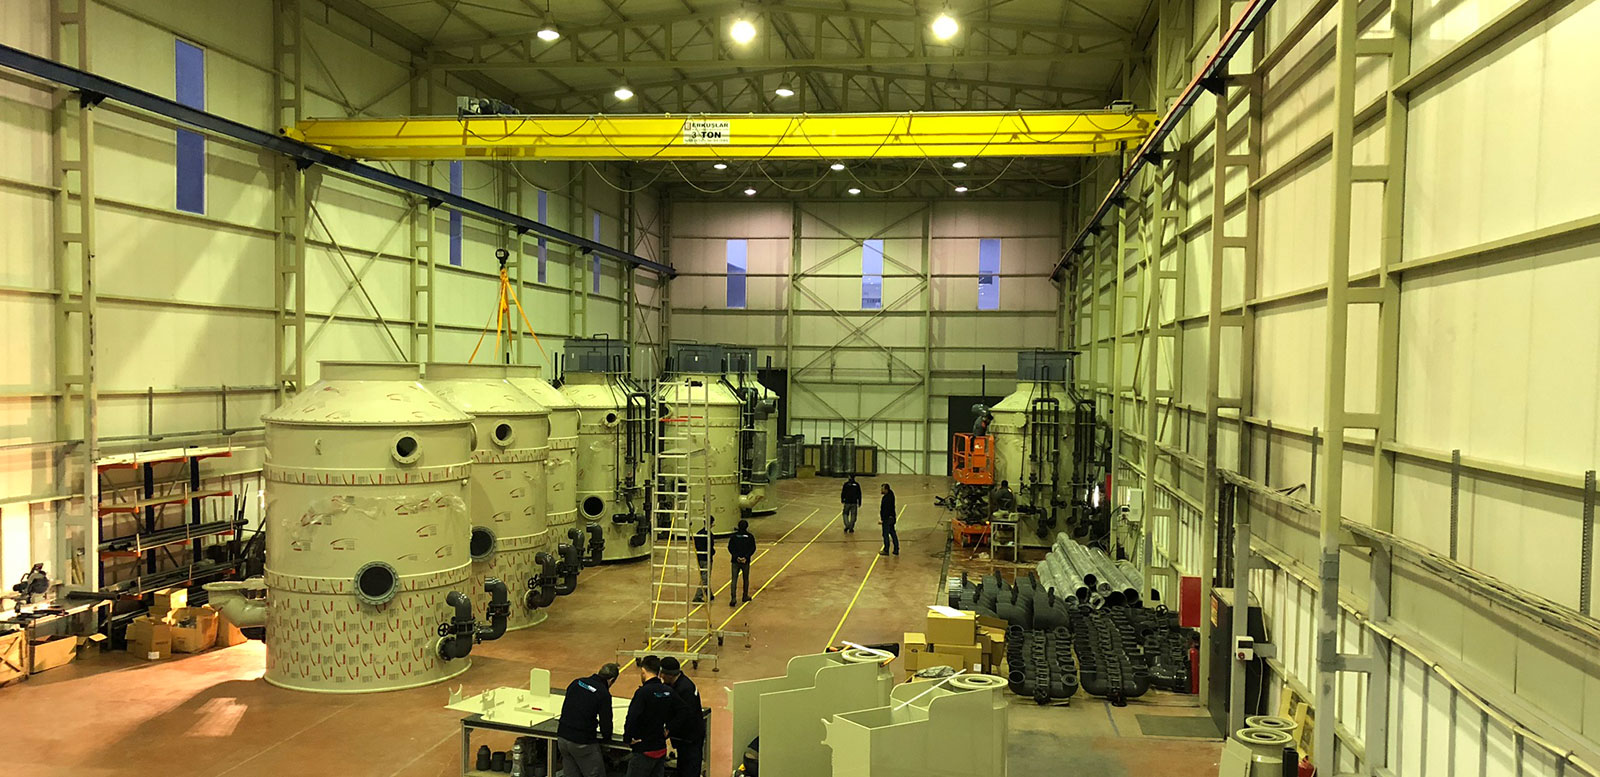 adec-lss-our-production-center-image-3